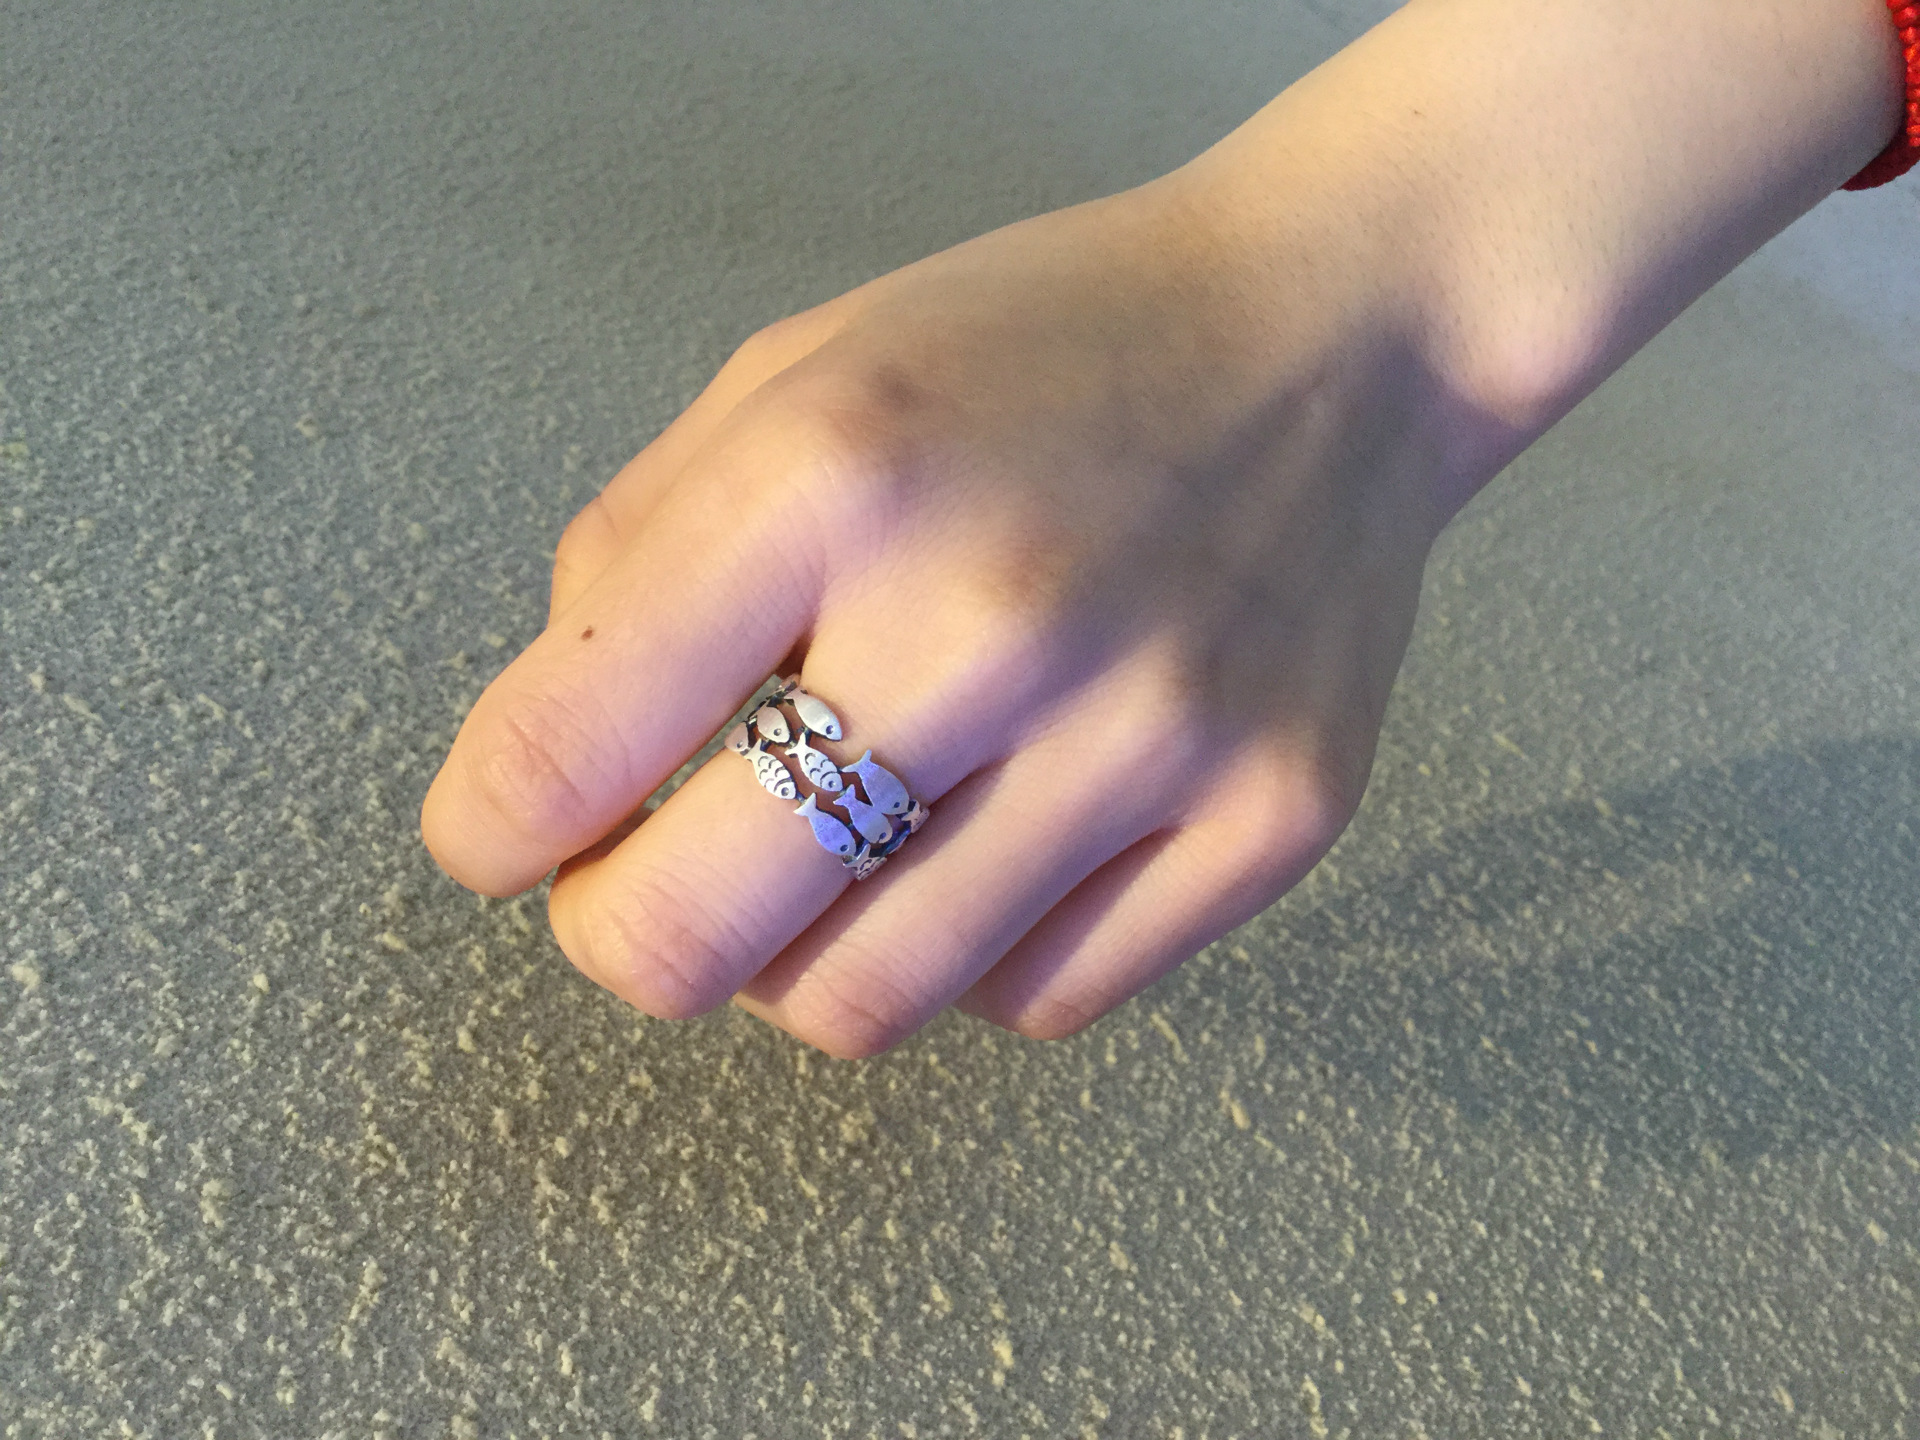 Stunning 925 Sterling Silver Swimming Fish Ring in hand